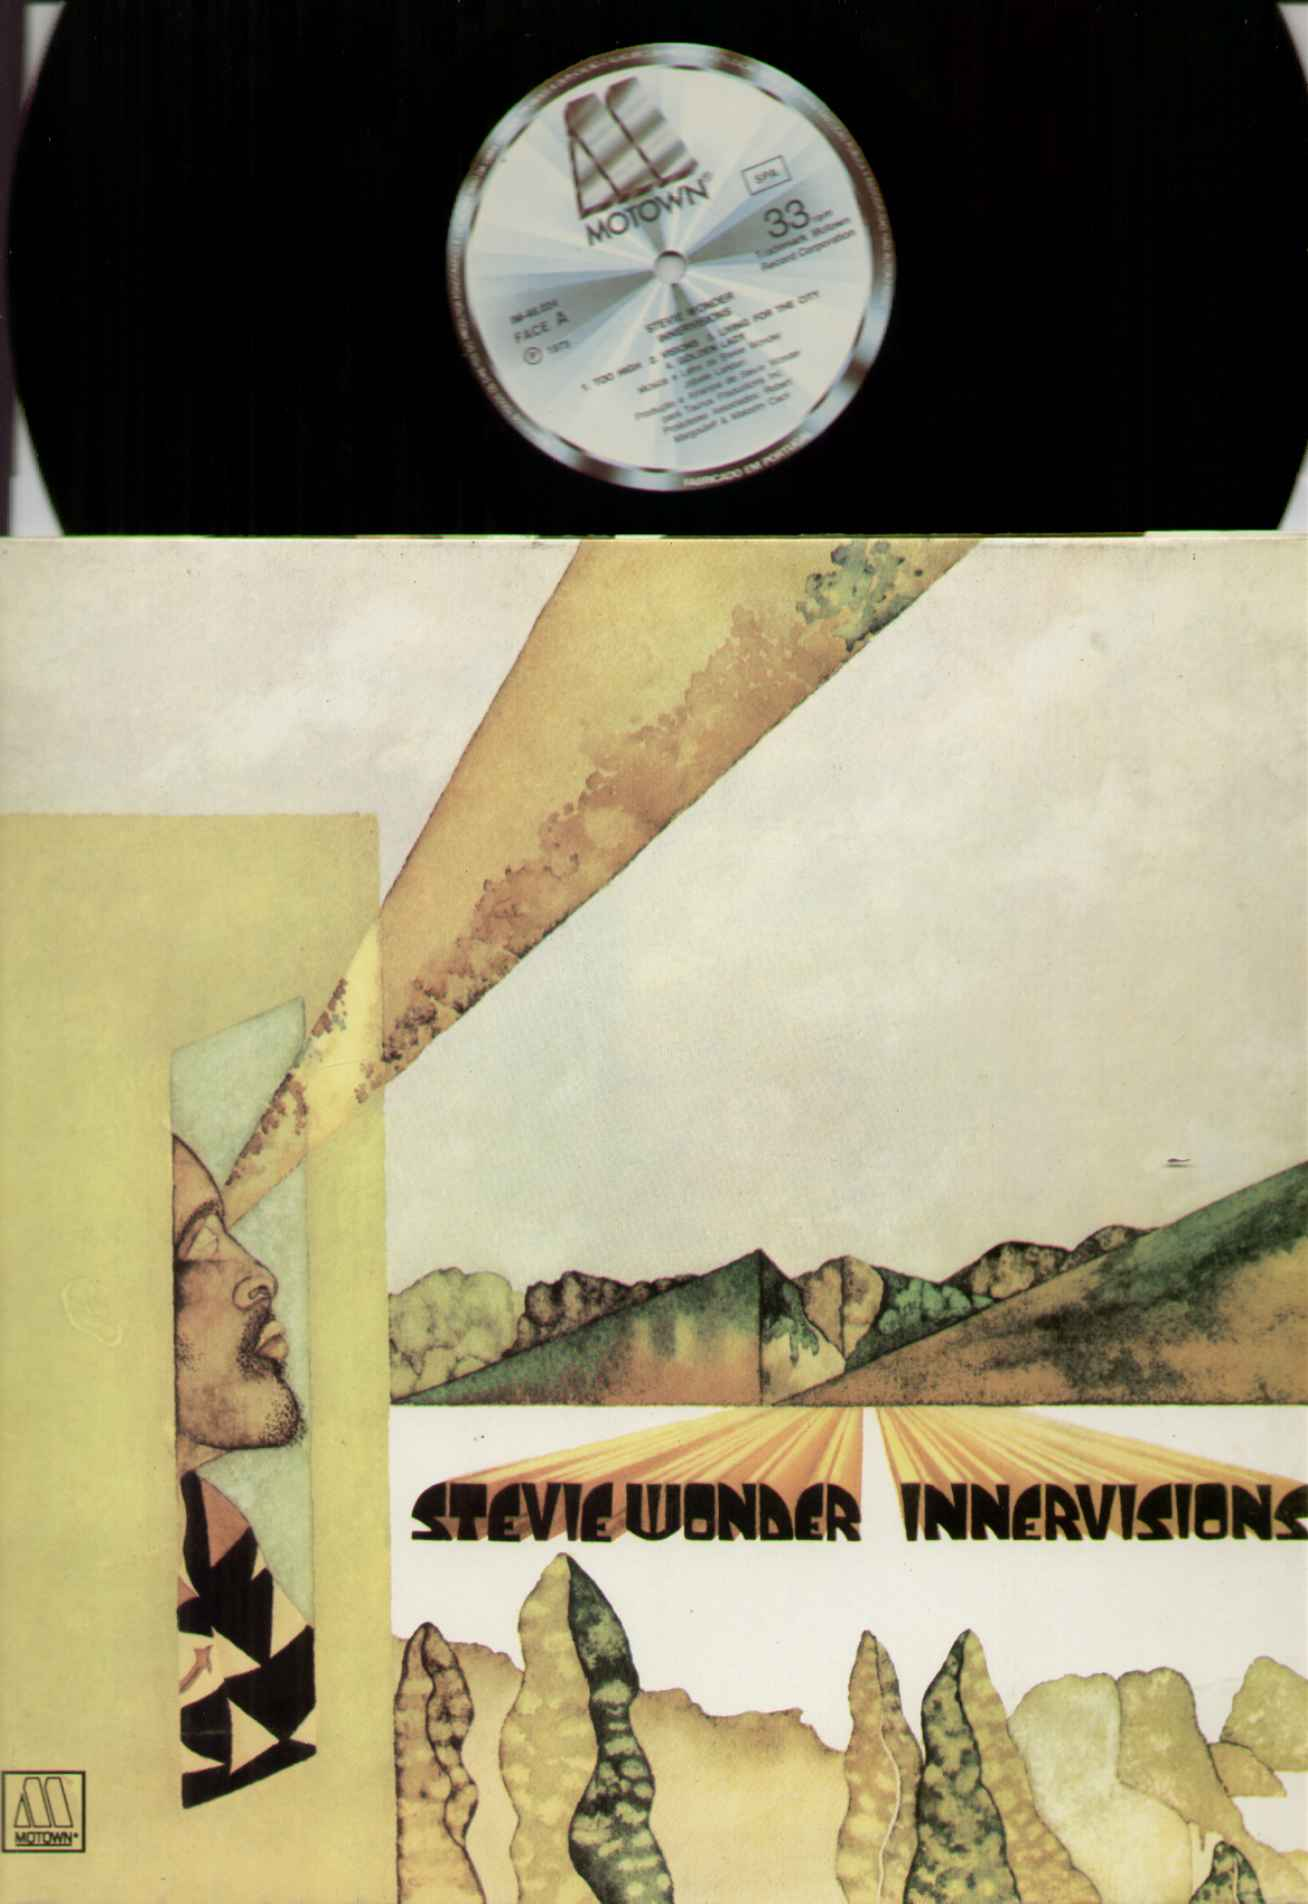 Stevie Wonder Innervisions Records Vinyl And Cds Hard